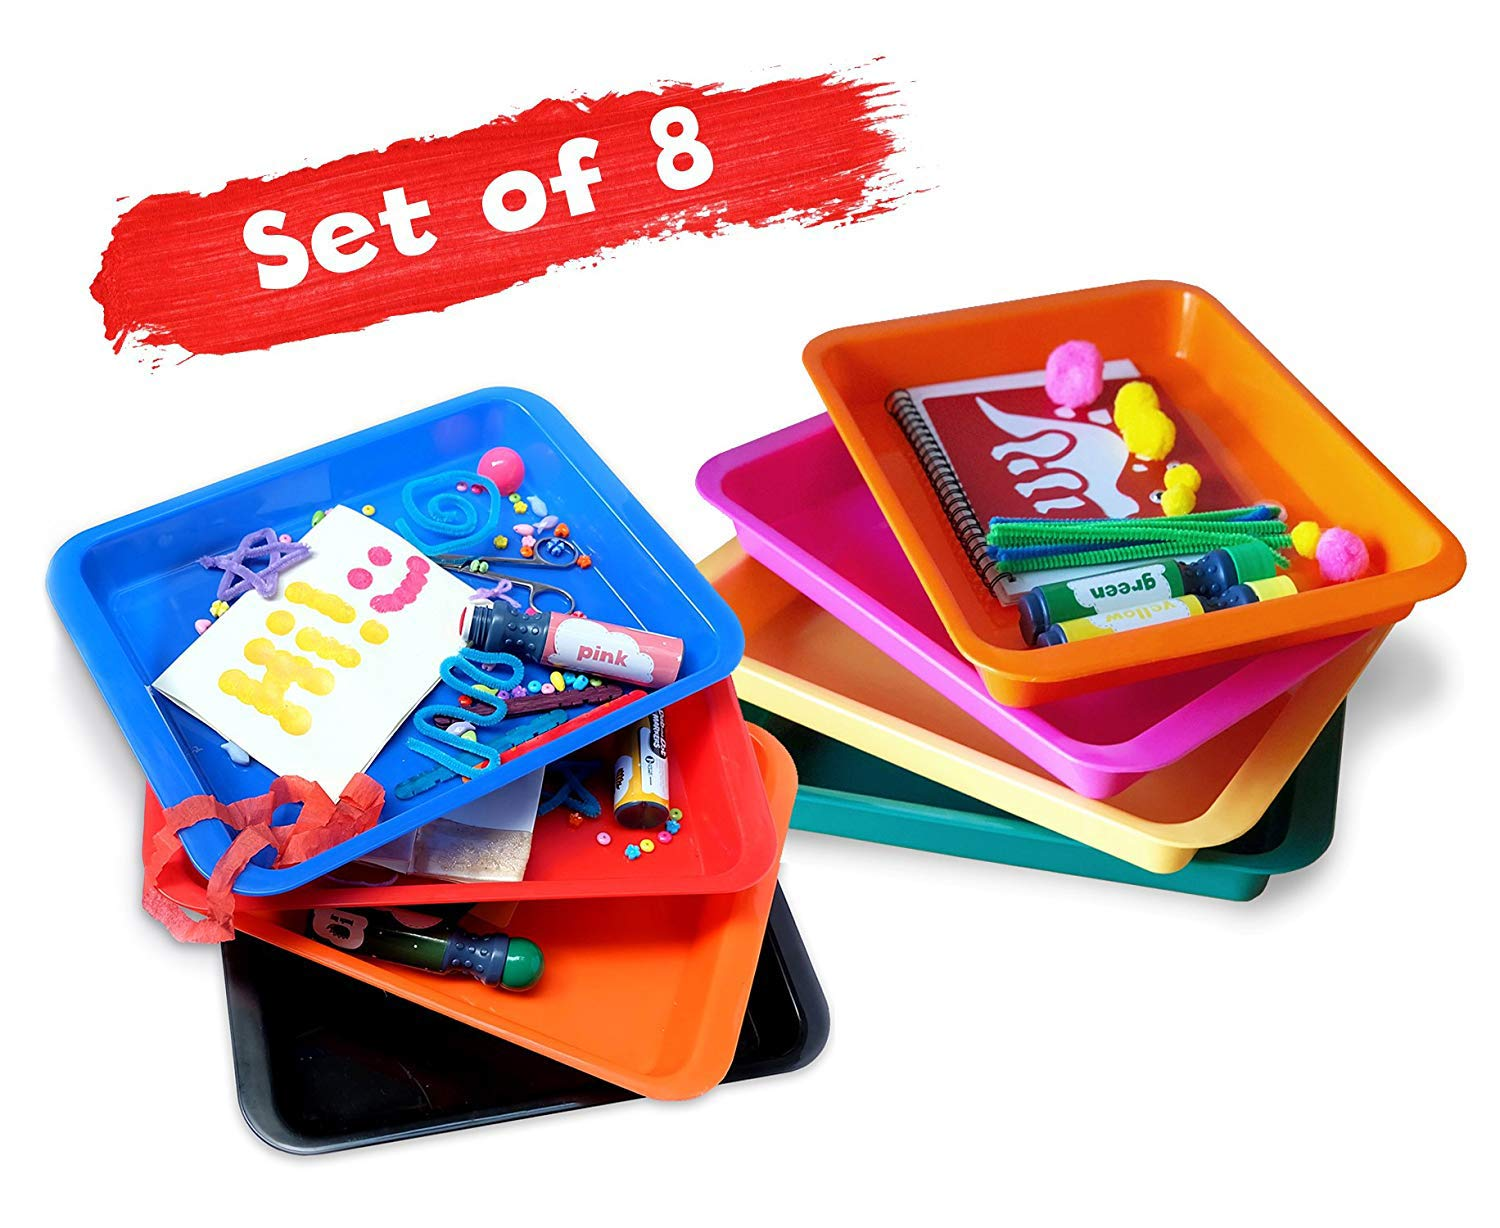 Set of 8 Kids Activity Plastic Tray, Rainbow of Colors, Arts and Crafts Organizer Tray, Serving Tray, Great for Crafts, Beads, Orbeez Water Beads, Painting and Montessori Work by Dab and Dot Markers